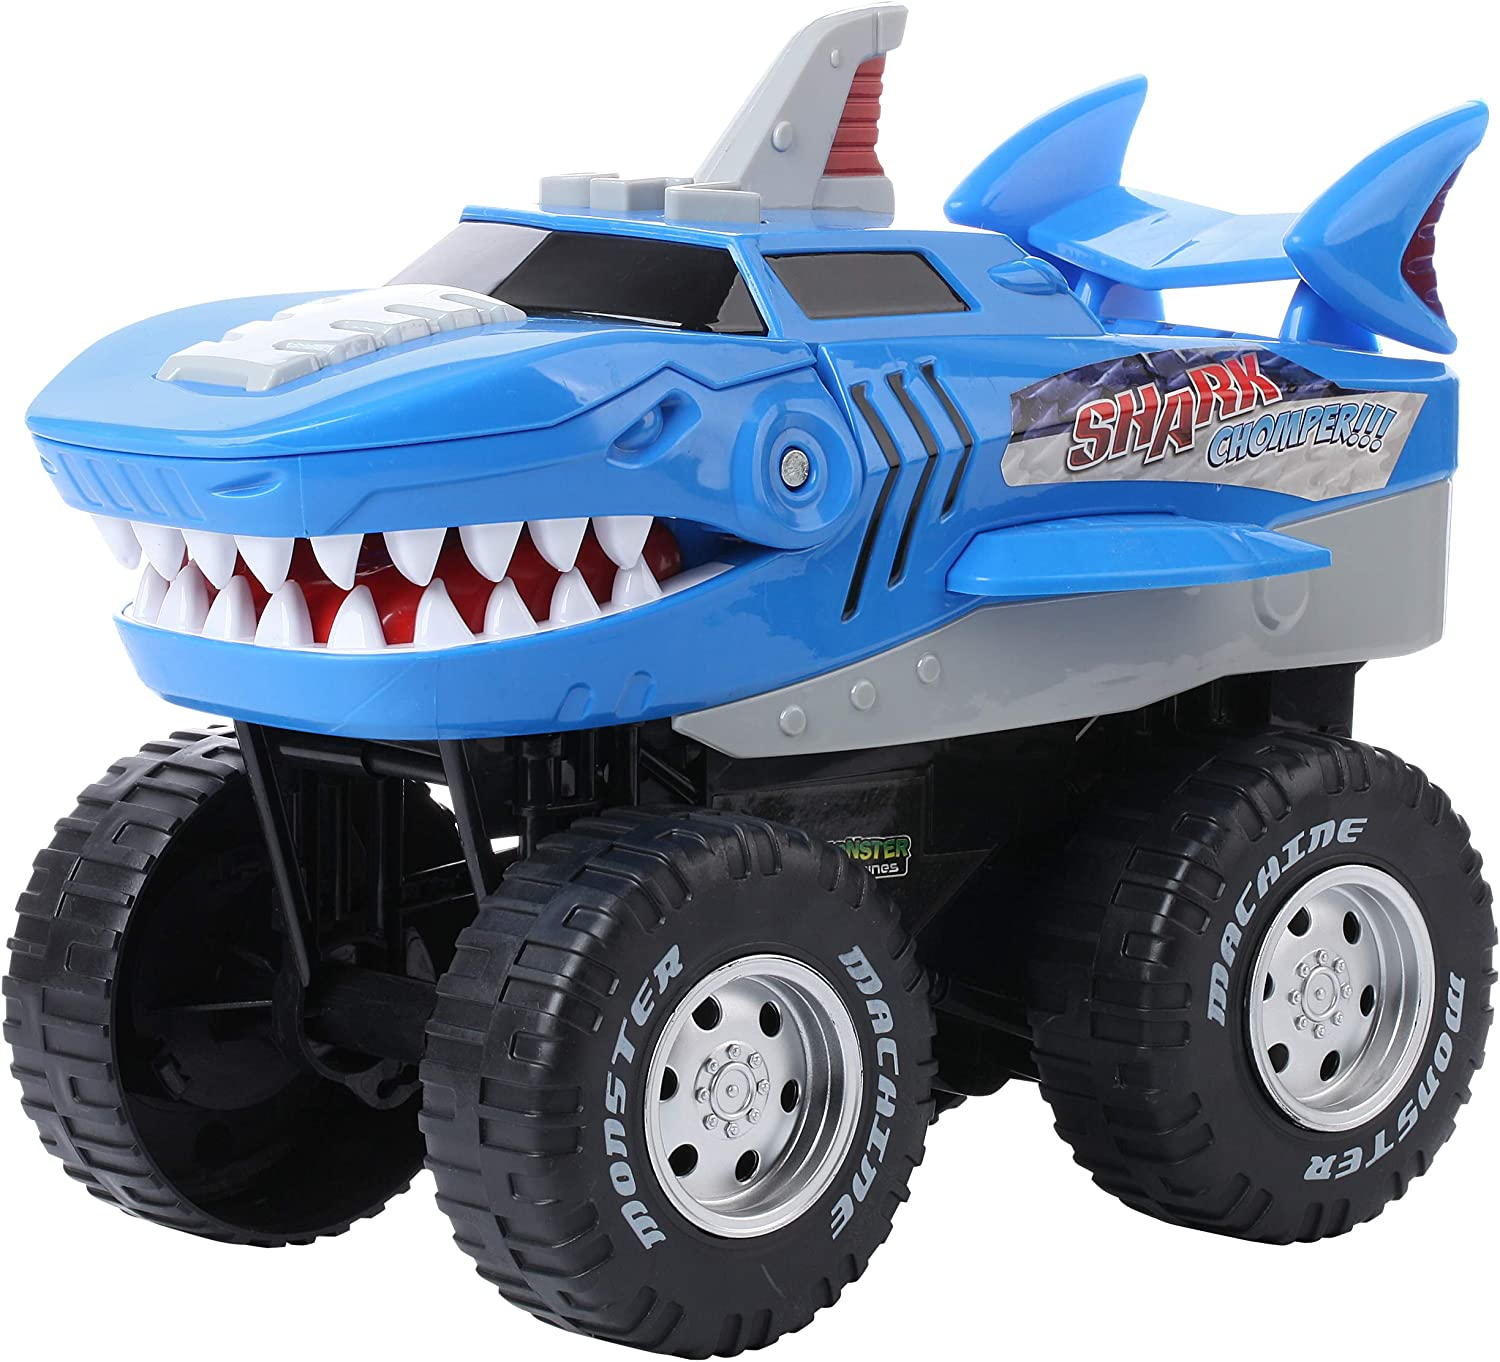 Amazon Com Powerful Shark Chomper Monster Truck Battery Powered Shark Car Lights Up With Revving Engine Sounds And Pops Wheelies Great Gift For Boys And Girls Ages 3 Toys Games